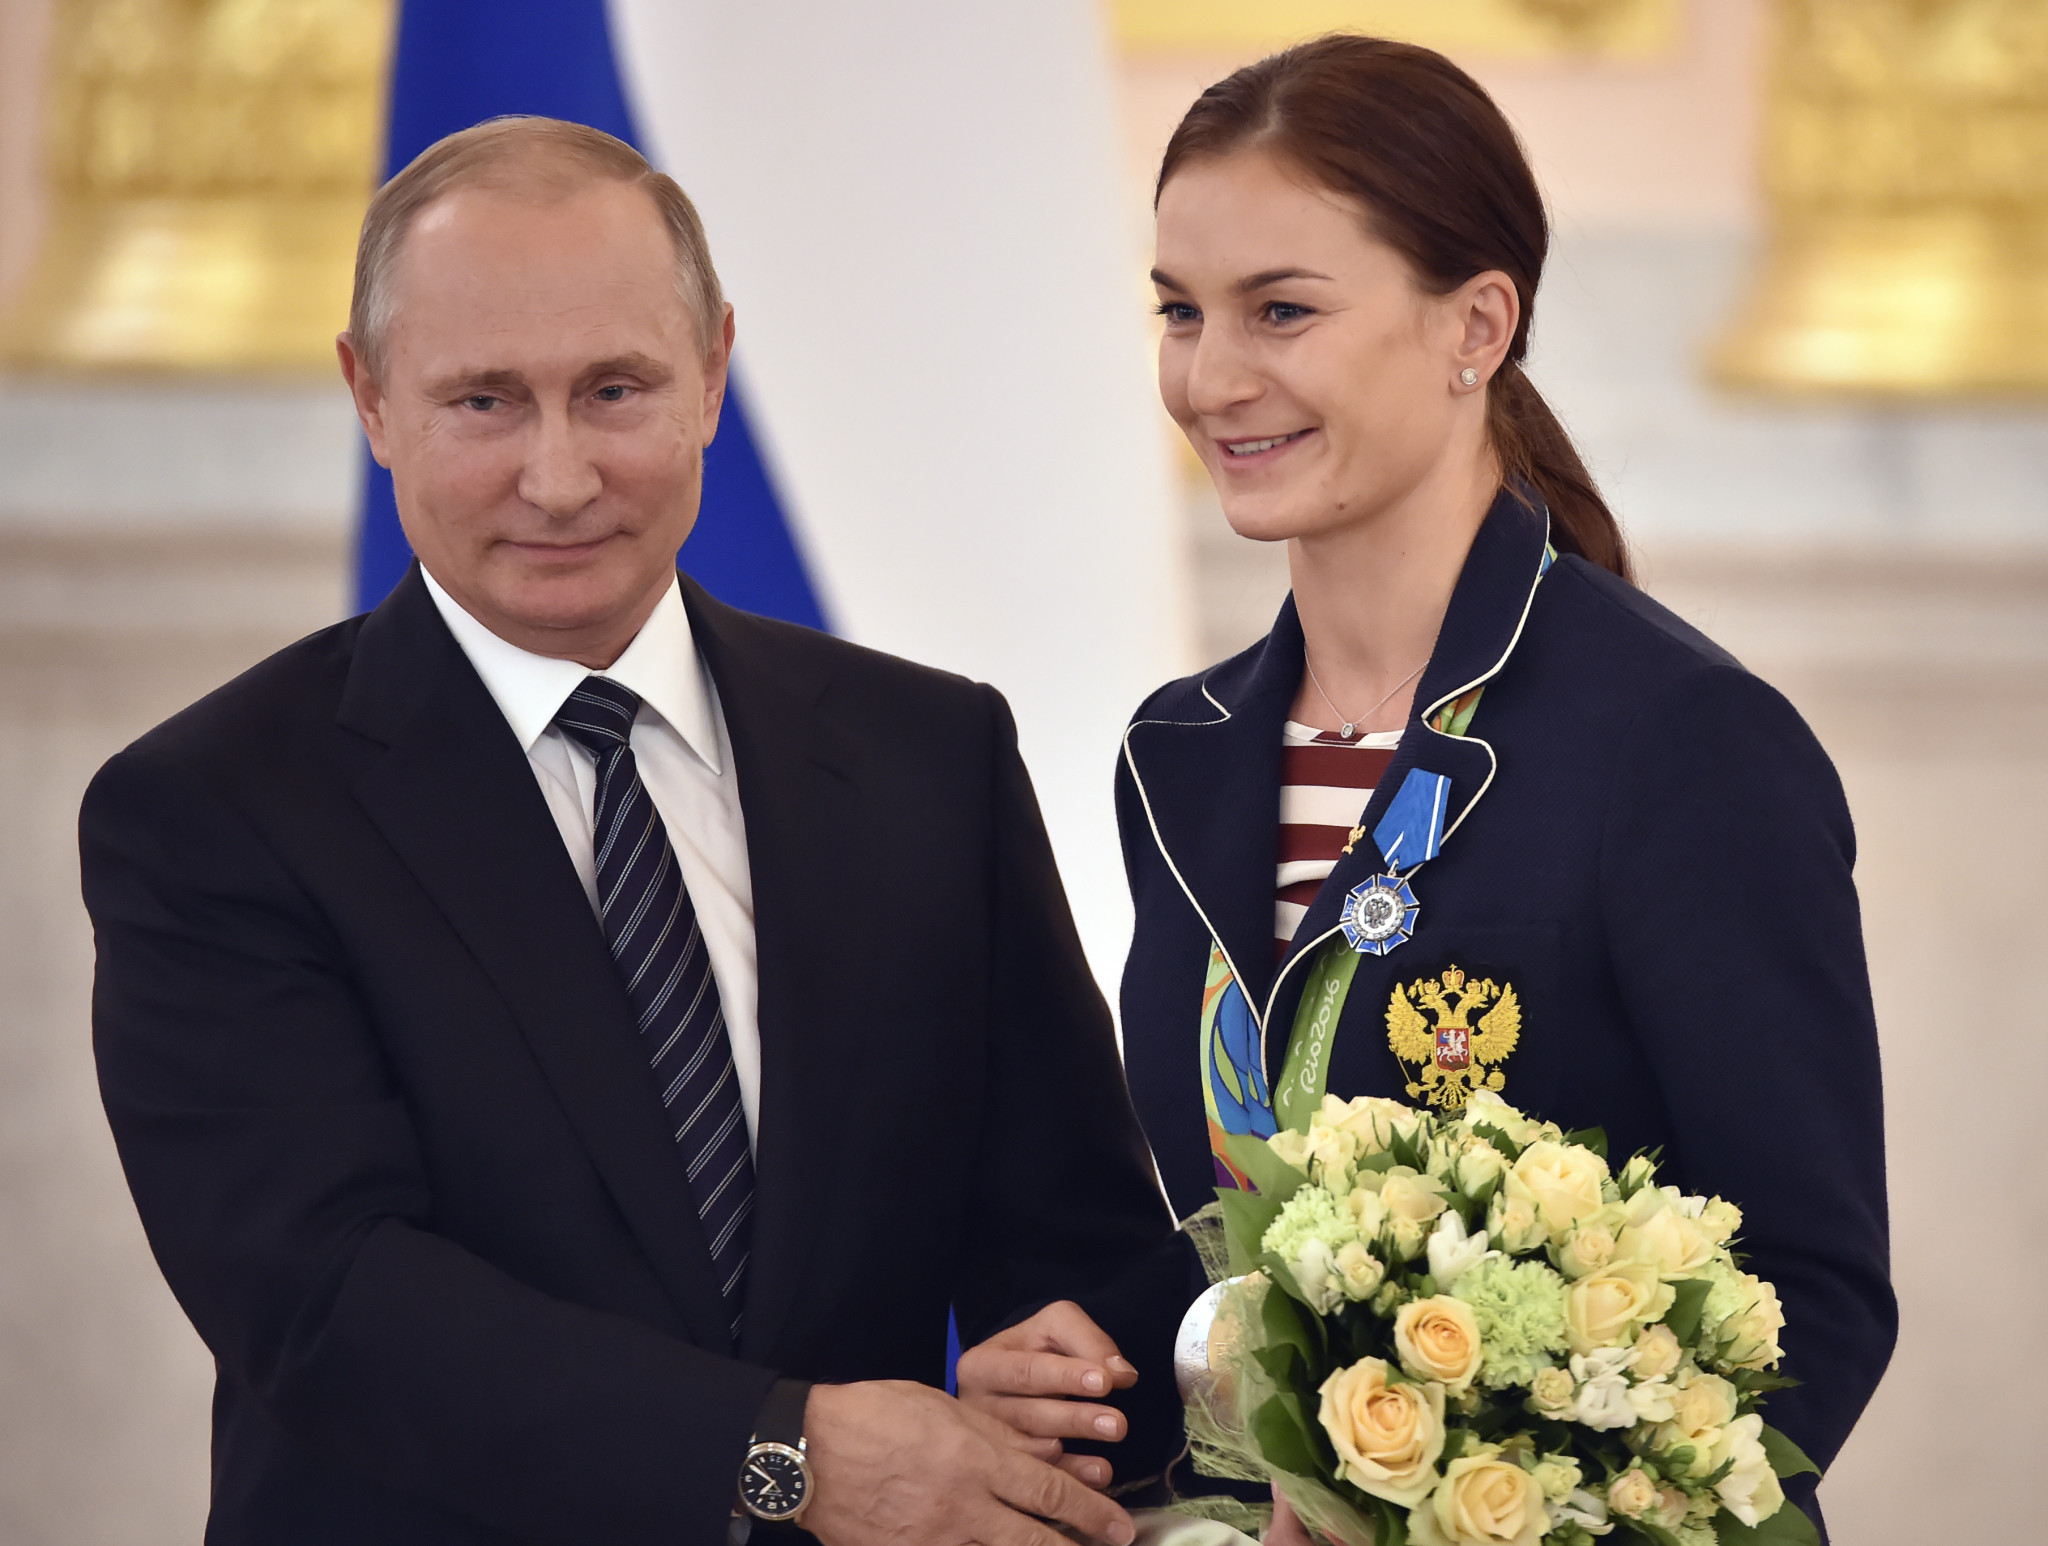 Sofya Velikaya, seen here with Vladimir Putin, says that all Russian athletes have announced plans to complete as neutral athletes under the Olympic flag at next year's Winter Olympic's in Pyeongchang ©Getty Images